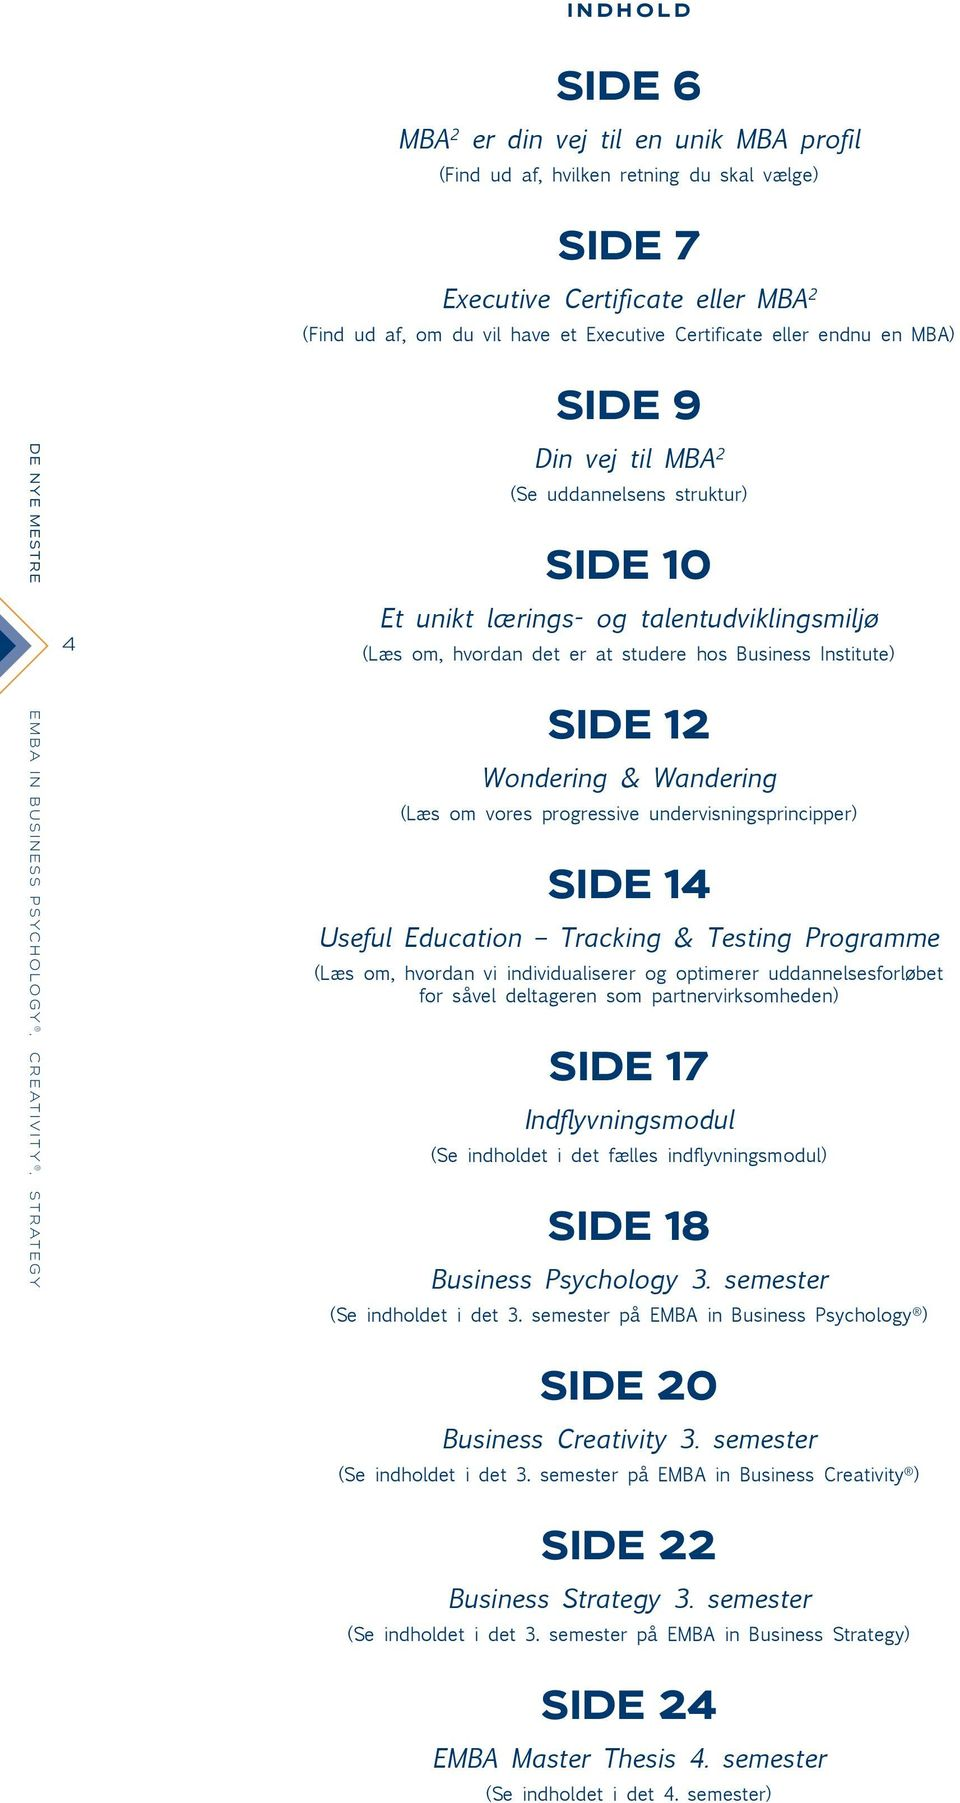 det er at studere hos Business Institute) SIDE 12 Wondering & Wandering (Læs om vores progressive undervisningsprincipper) SIDE 14 Useful Education Tracking & Testing Programme (Læs om, hvordan vi